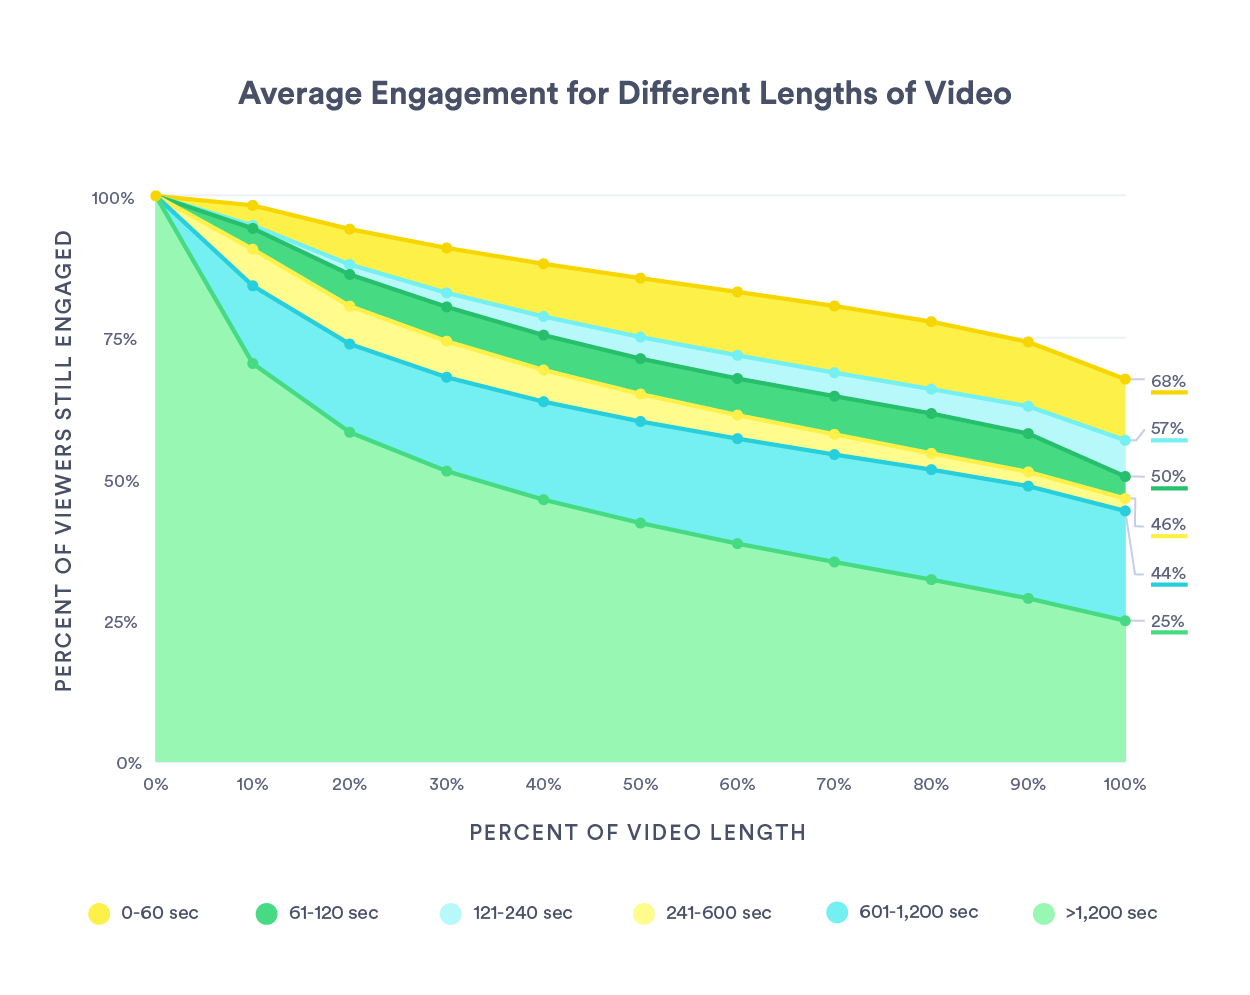 this graph showing average engagement for different lengths of video delivers key insights for deciding landing page video length